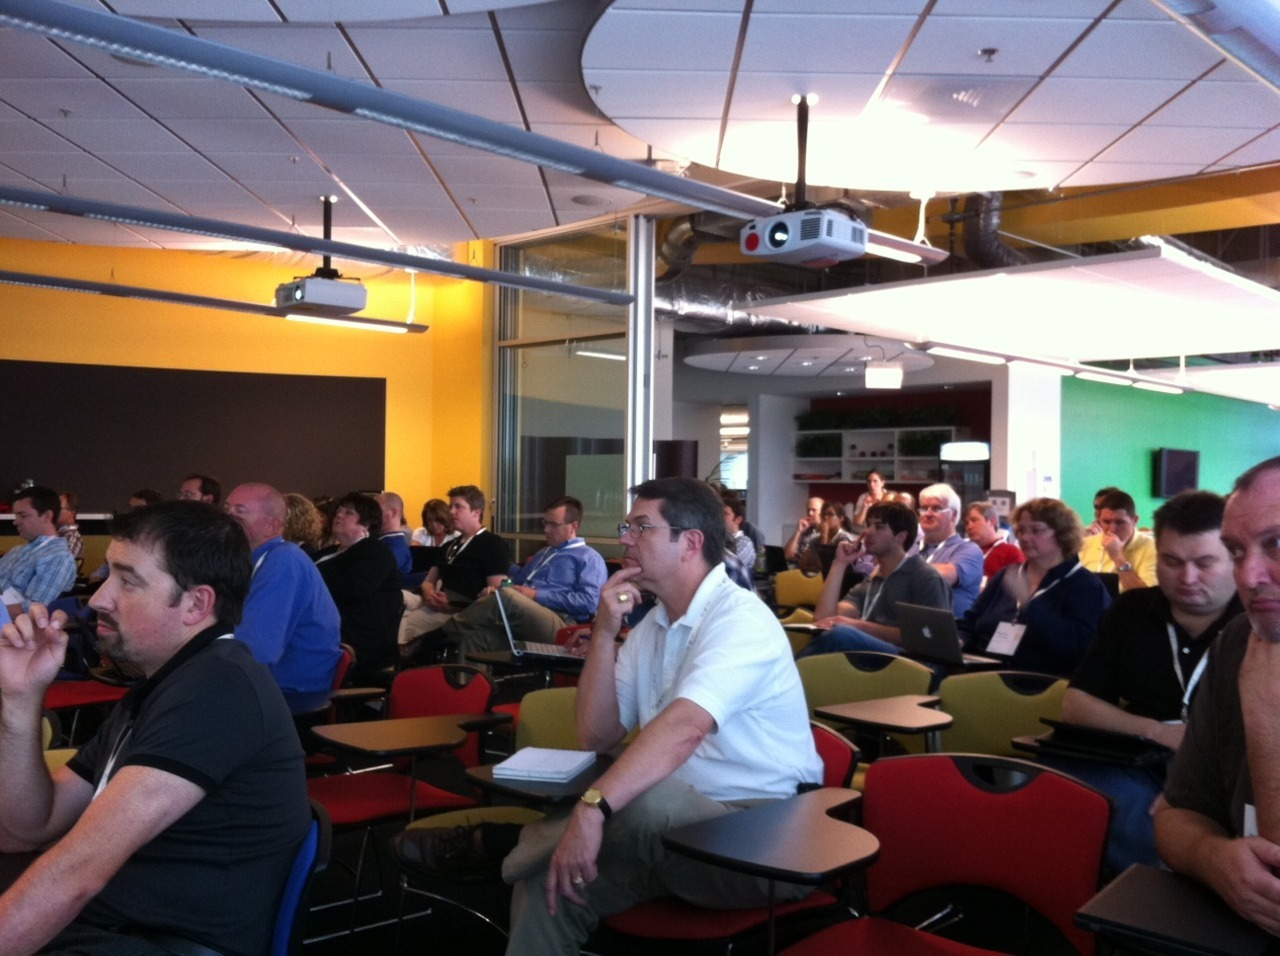 We recently had a Google Regional Users Group event in Atlanta Georgia at the Google office.  Here are a few pictures from the event.